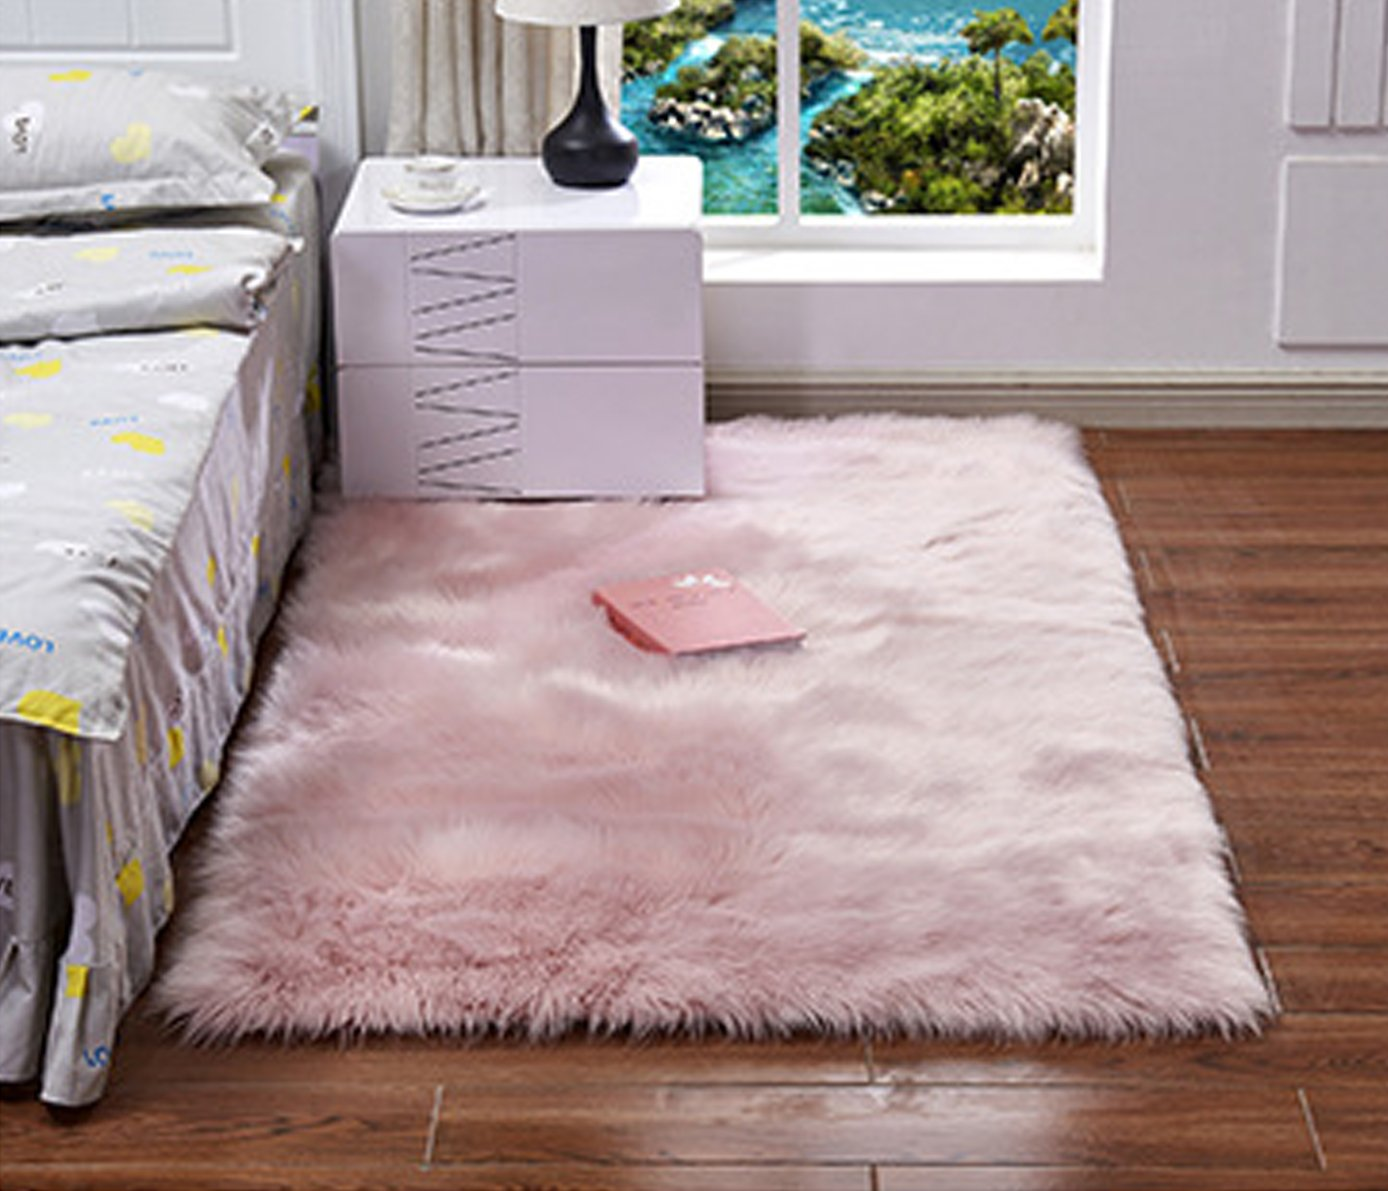 Faux Fur Sheepskin Area Rug,Solid Shaggy Area Rugs for Living Bedroom Floor – Light Pink 4ftx6ft